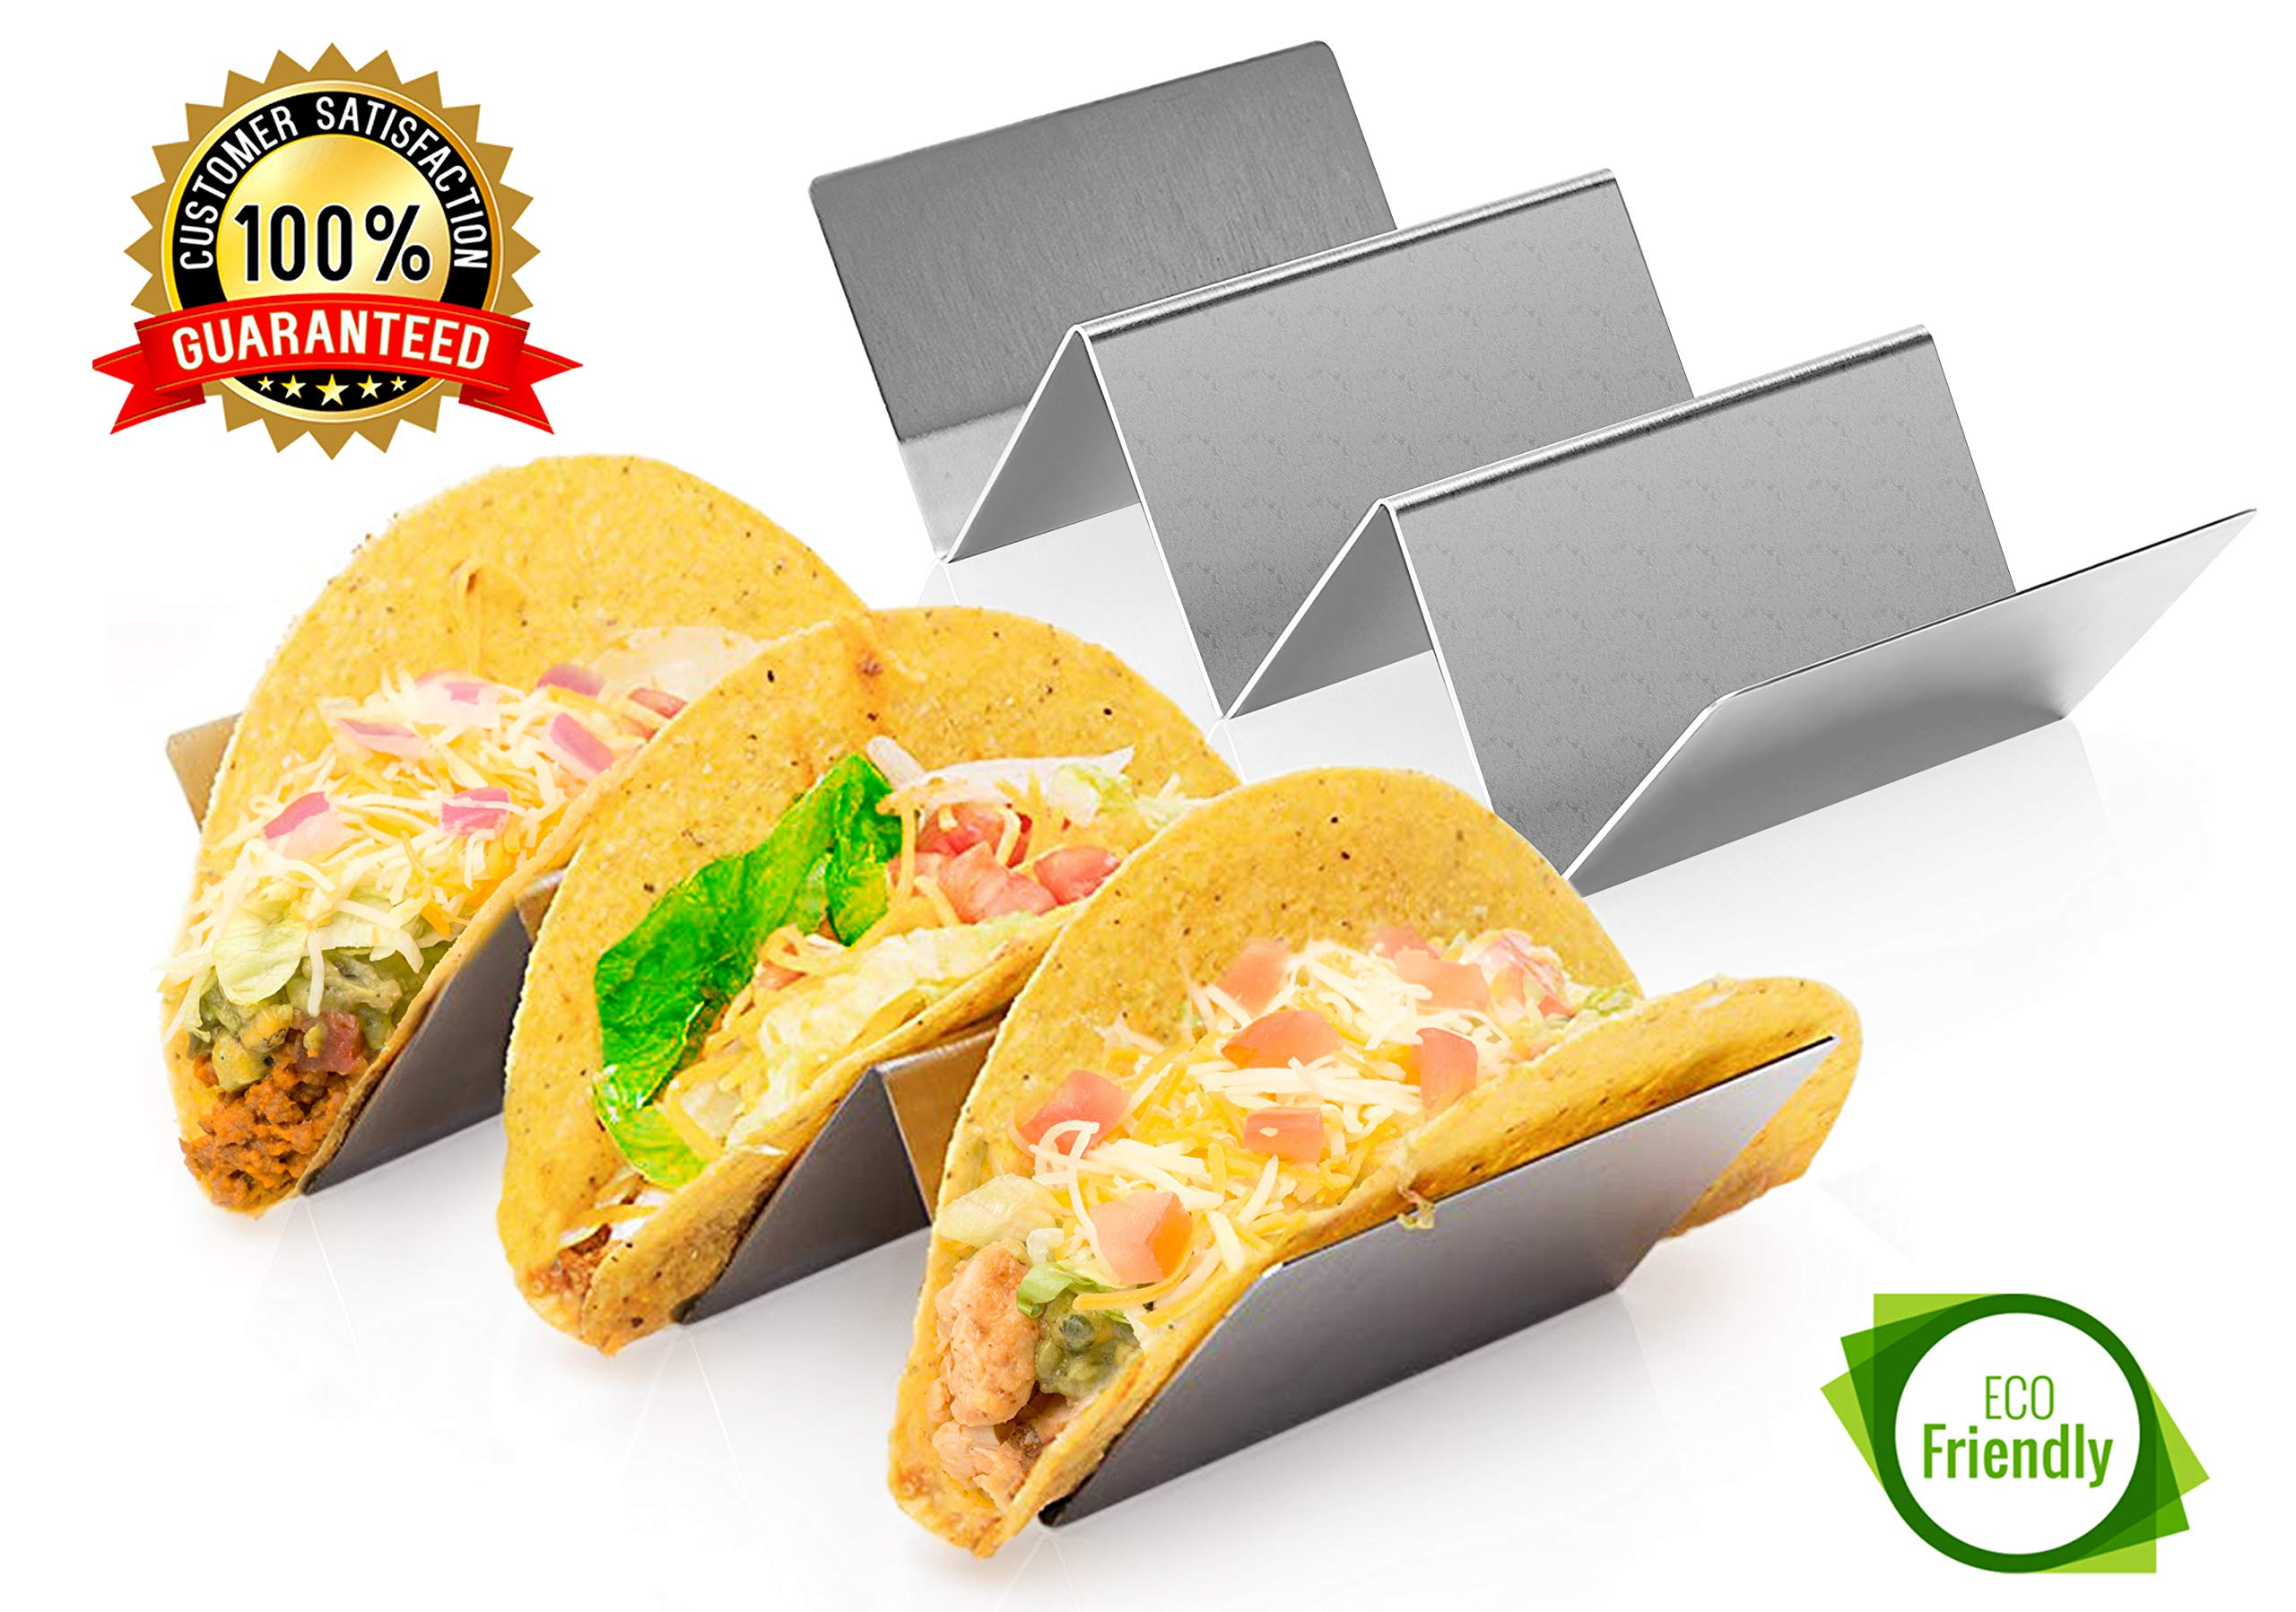 2 Pack Stainless Steel Taco Holder Tray, Taco Truck Stand Holds Up To 3 Tacos Each as Plates, Use as a Shell Baking Rack - Safe for Dishwasher, Oven, and Grill, Holders Size 8'' x 4'' x 2''  by Bioexcel